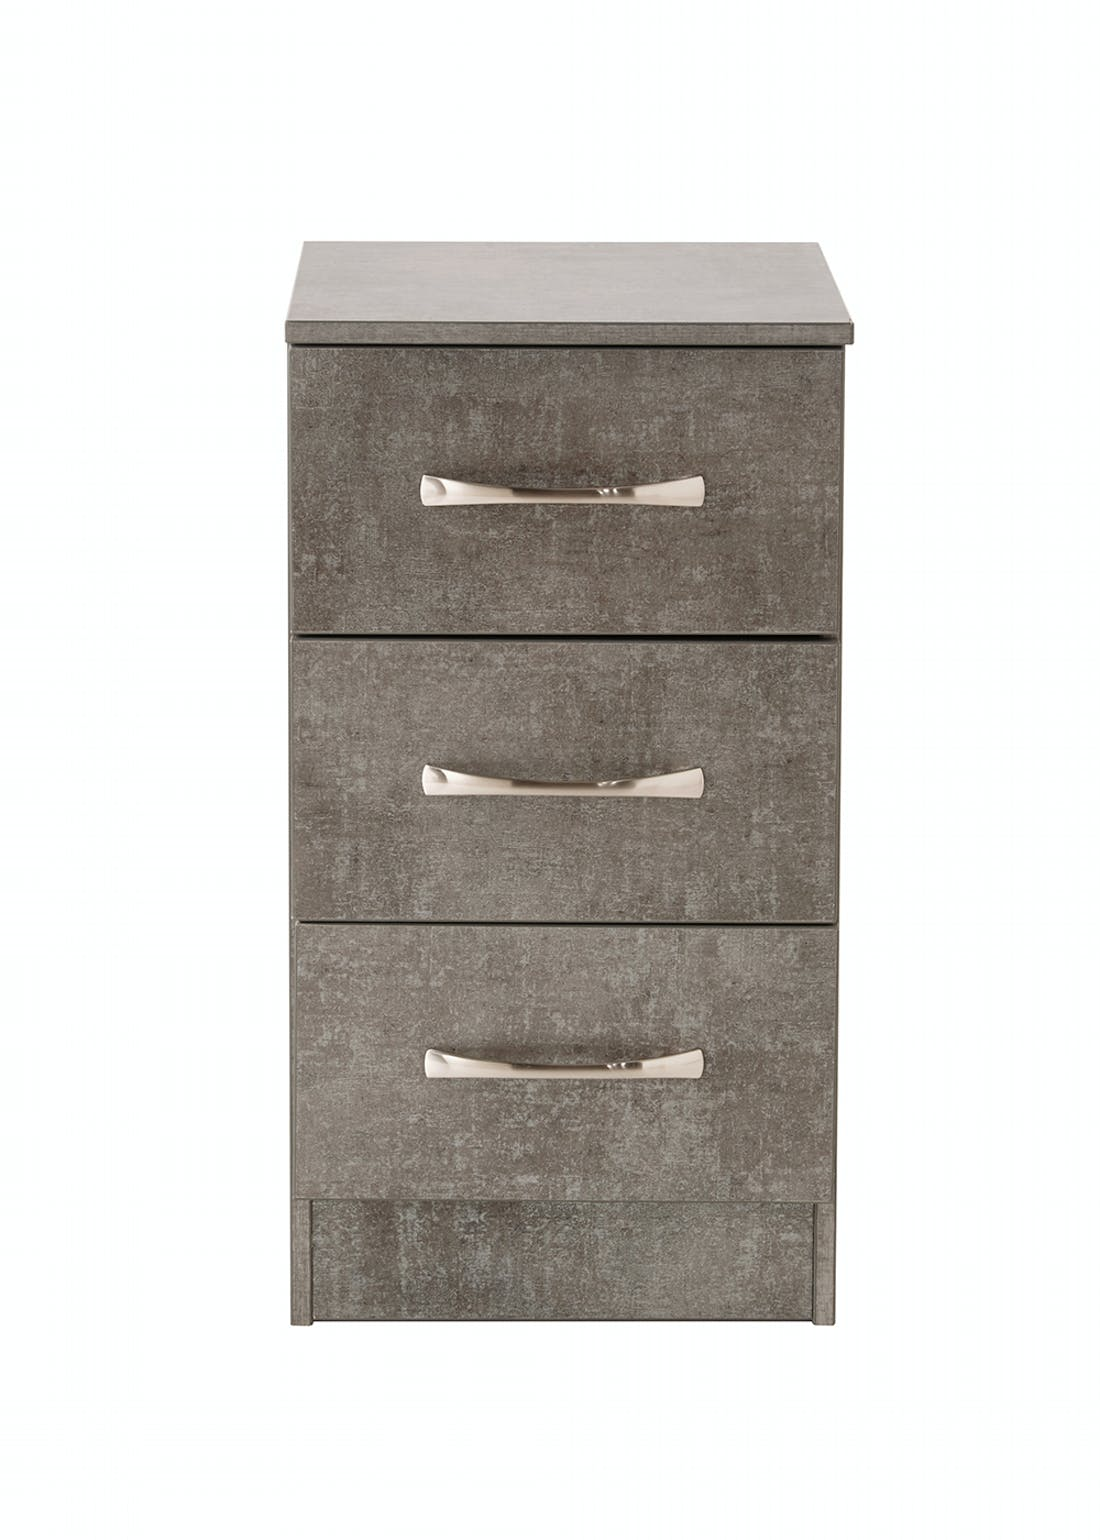 Swift Roma 3 Drawer Bedside Table (69.5cm x 39.5cm x 41.5cm)